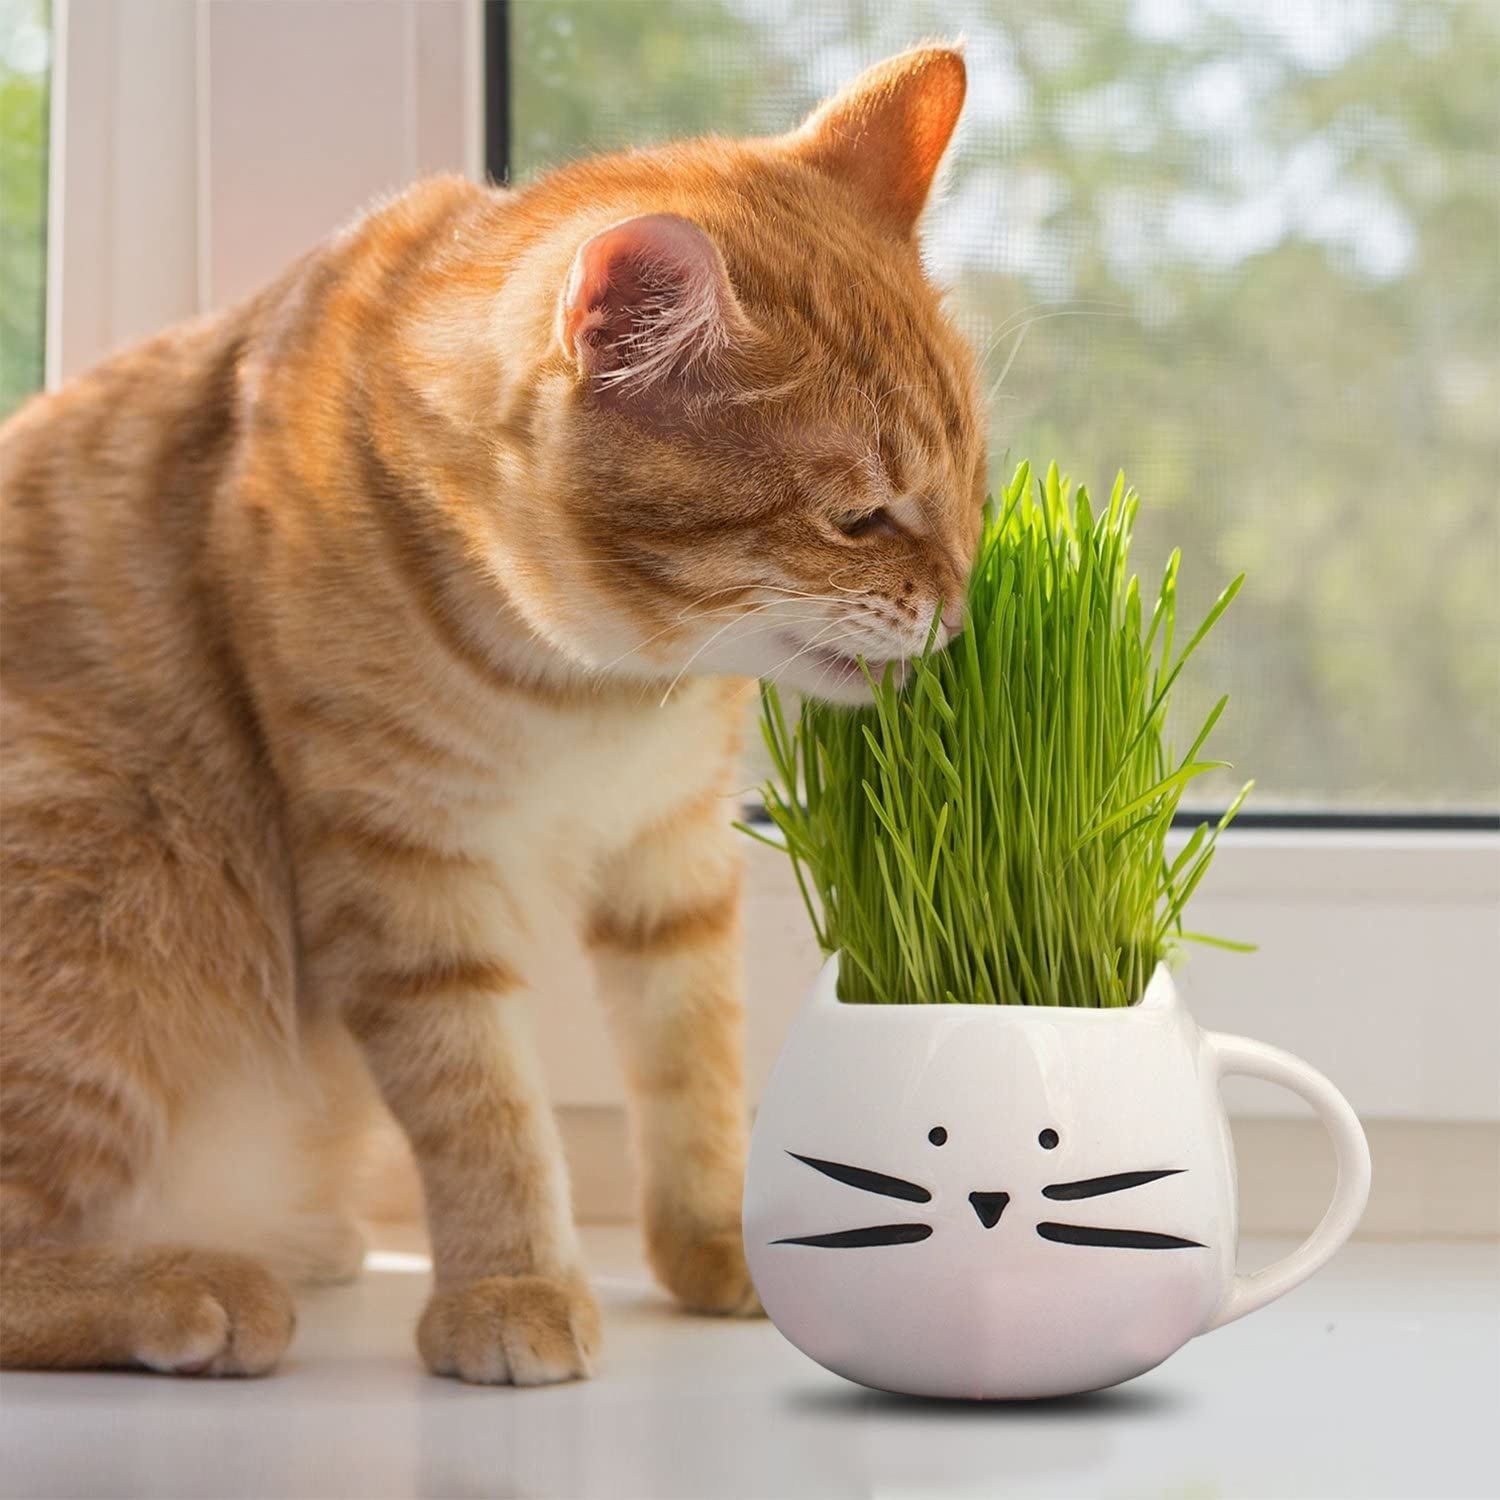 A white cat shaped mug with cat grass growing out of it that a cat is nibbling